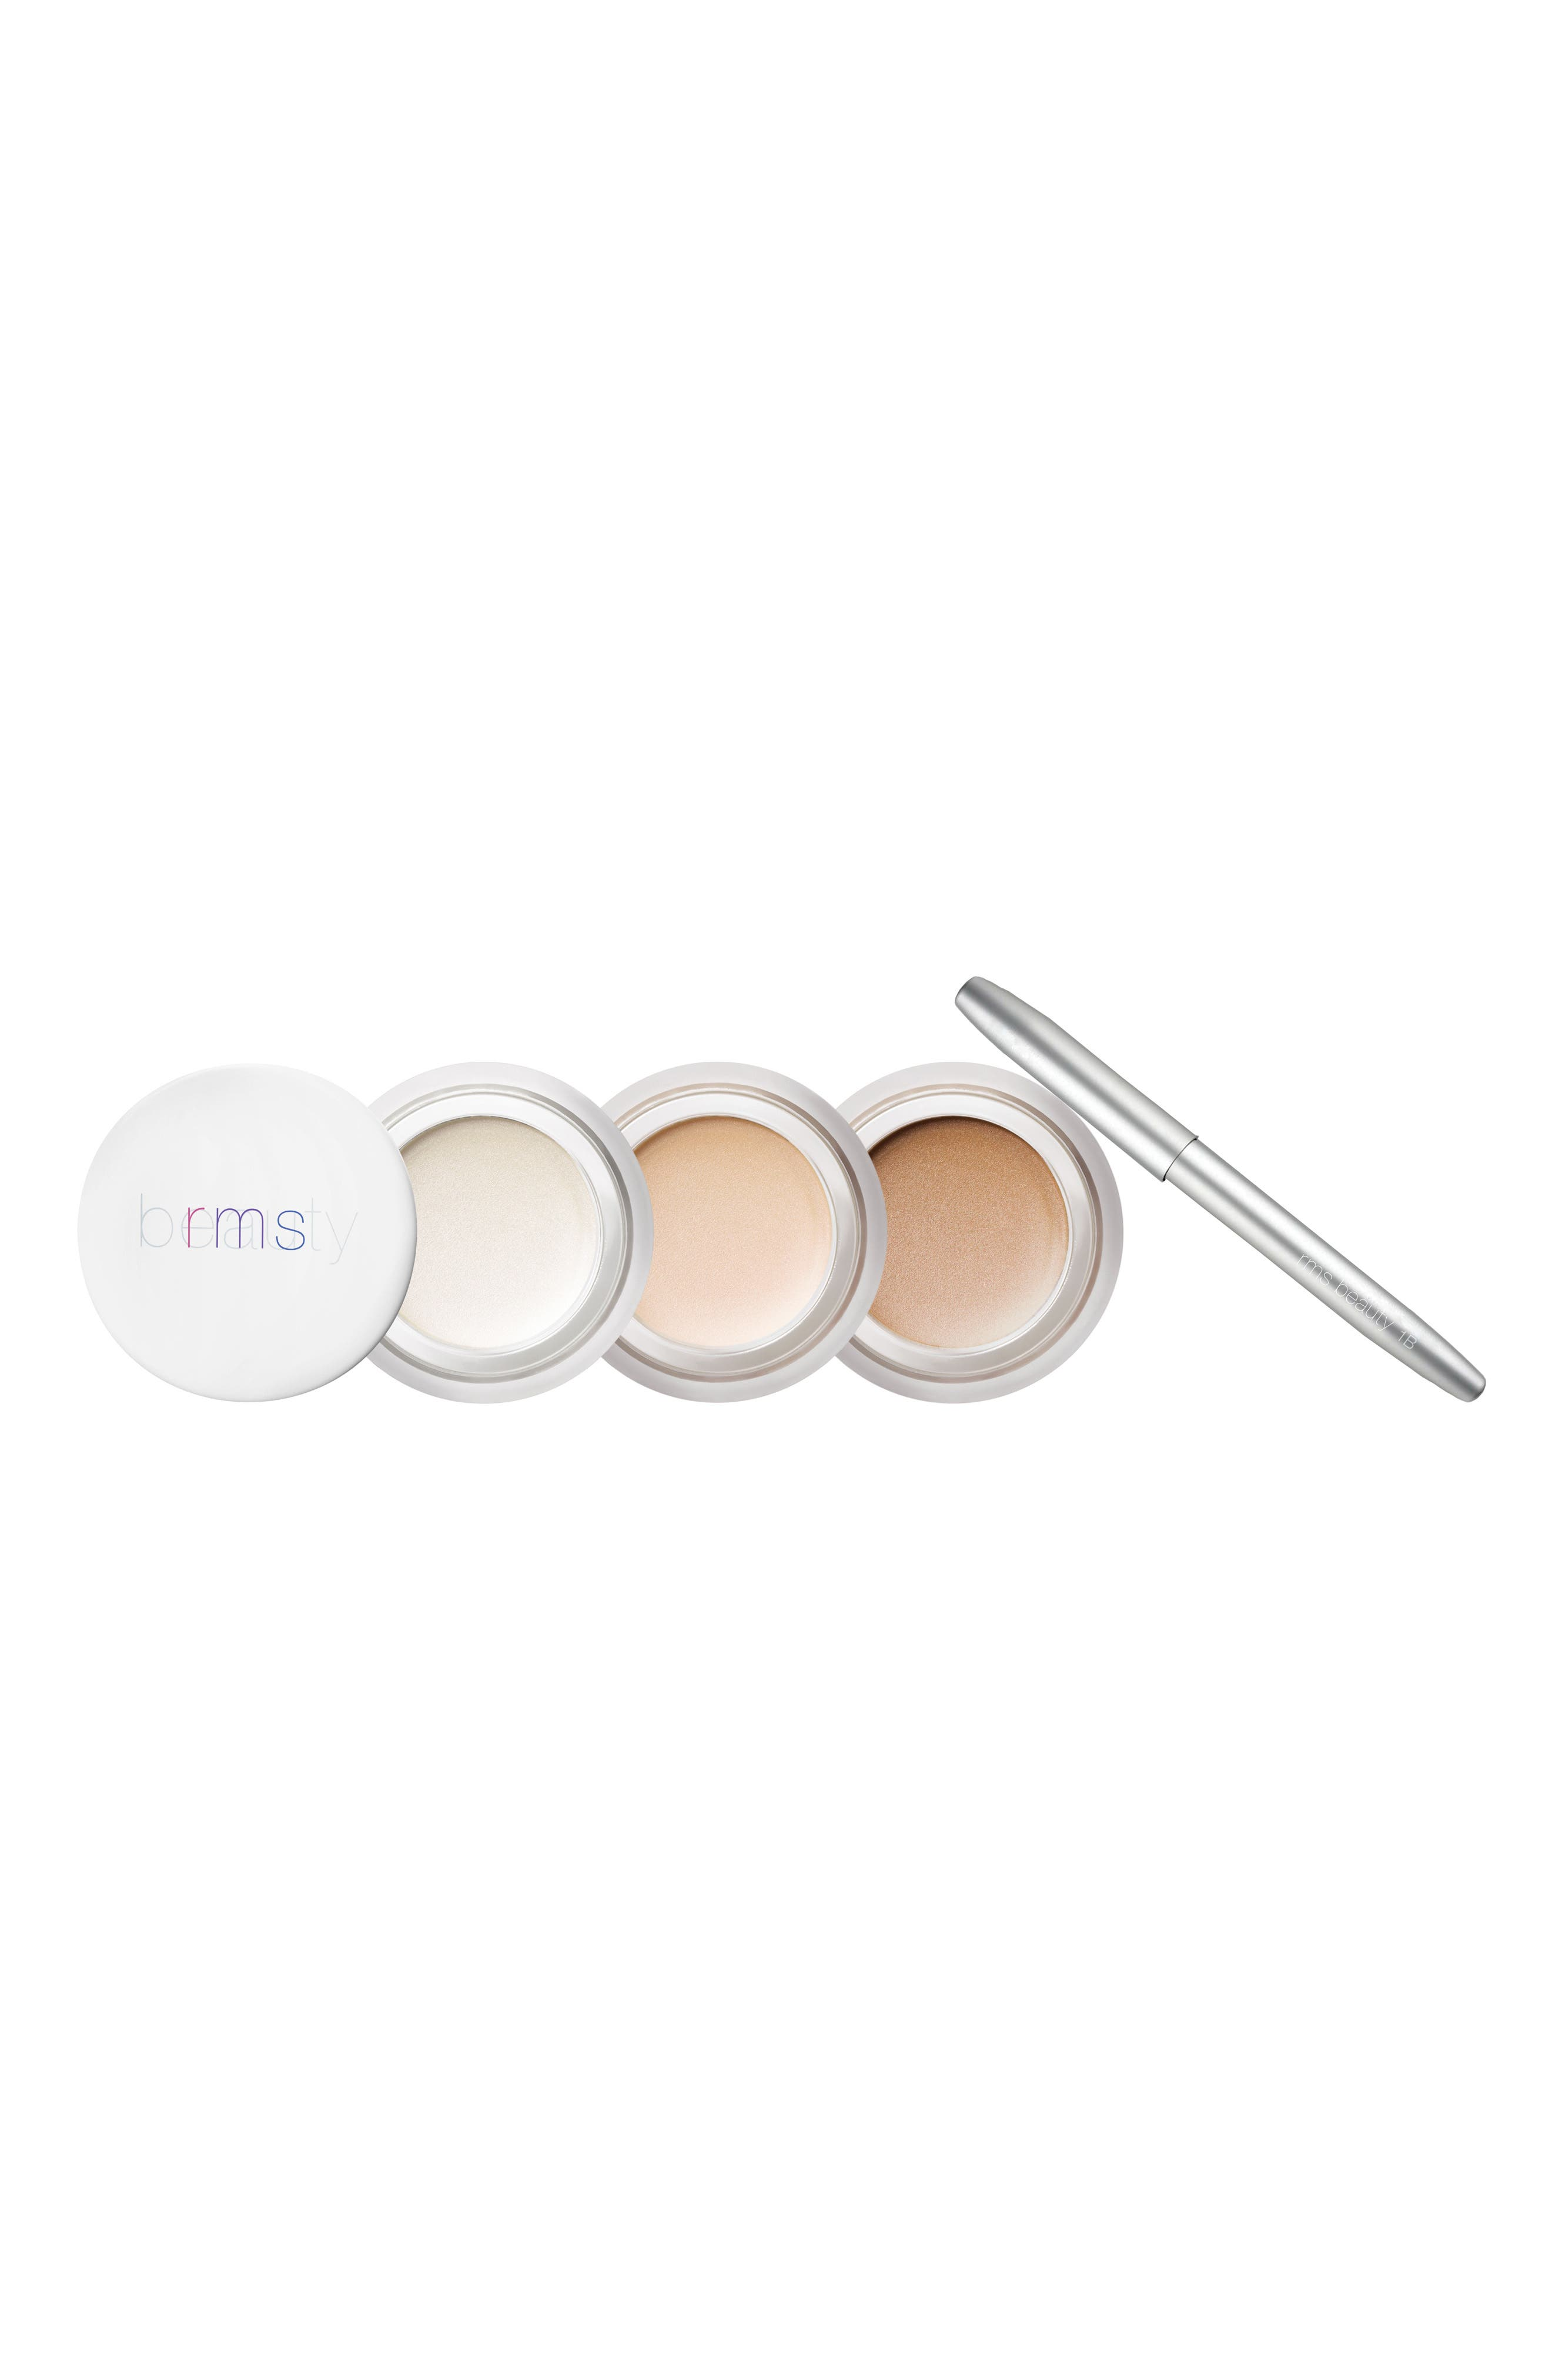 RMS Beauty Luminizer Set ($126 Value)